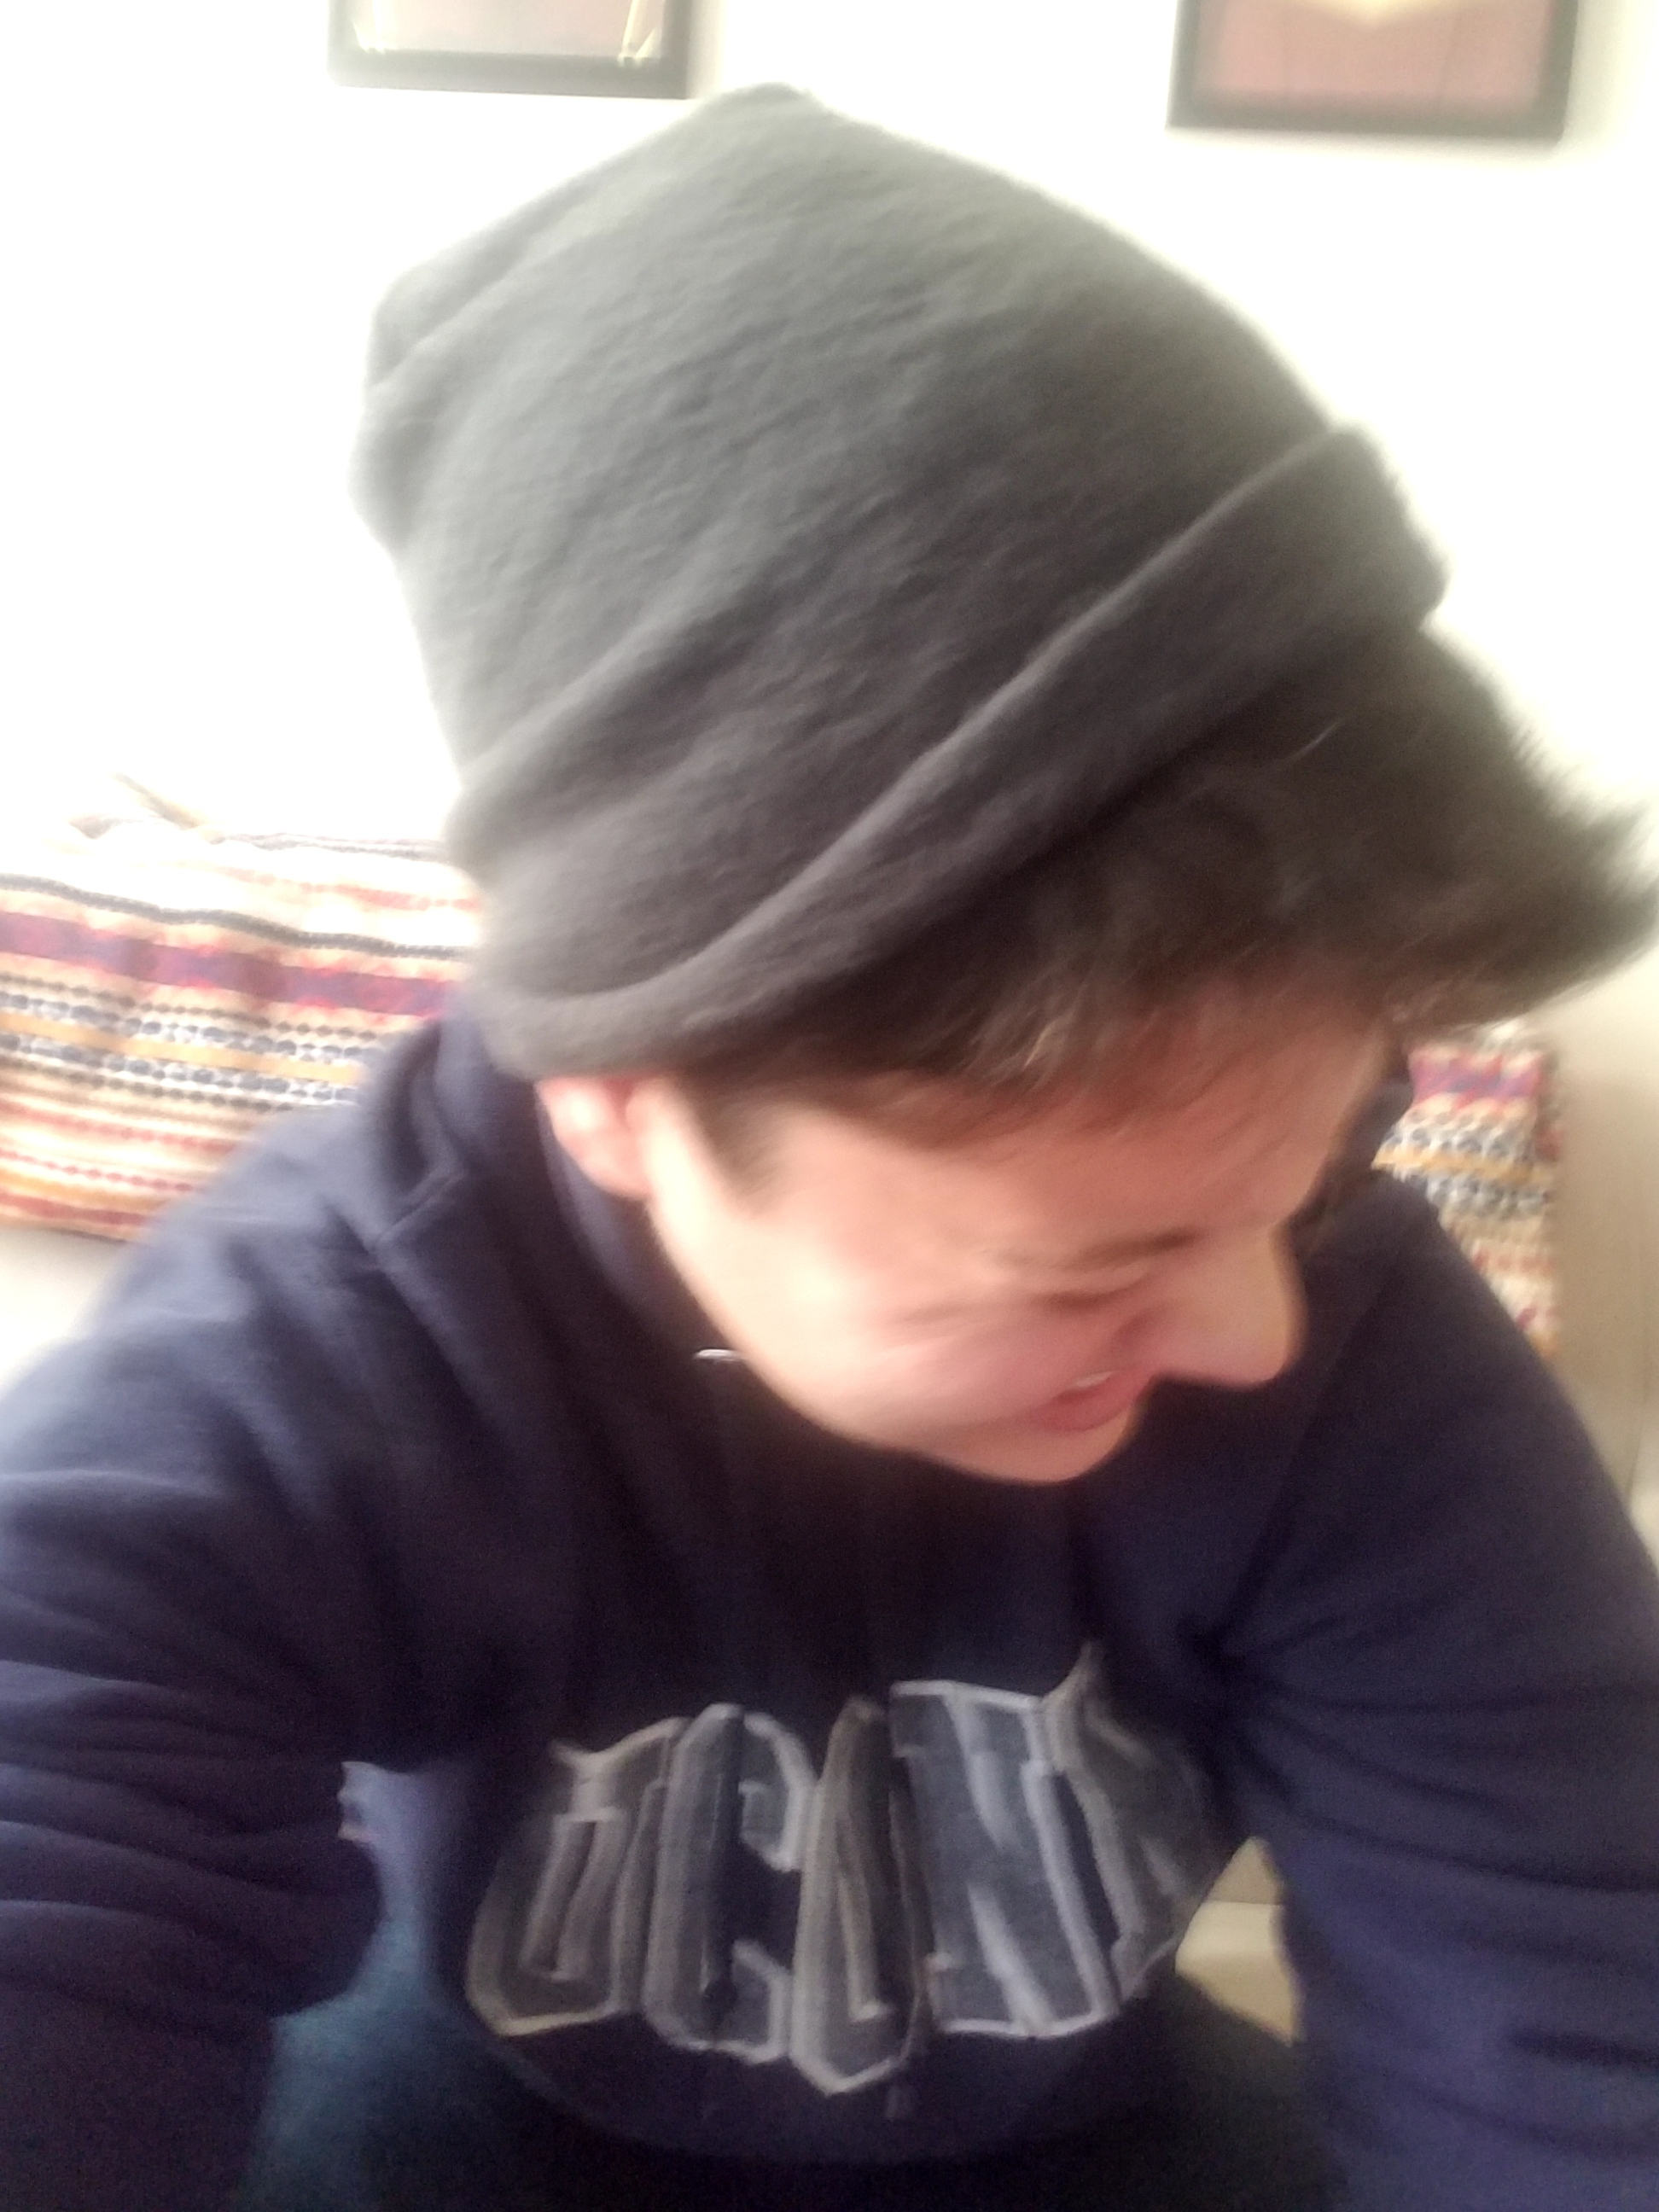 ^^ This one, I love. No one is crying, shhhhh. I'm laughing, but this time more of my beanie than my face is visible because I'm looking down and away. The smile is still extremely crinkly.